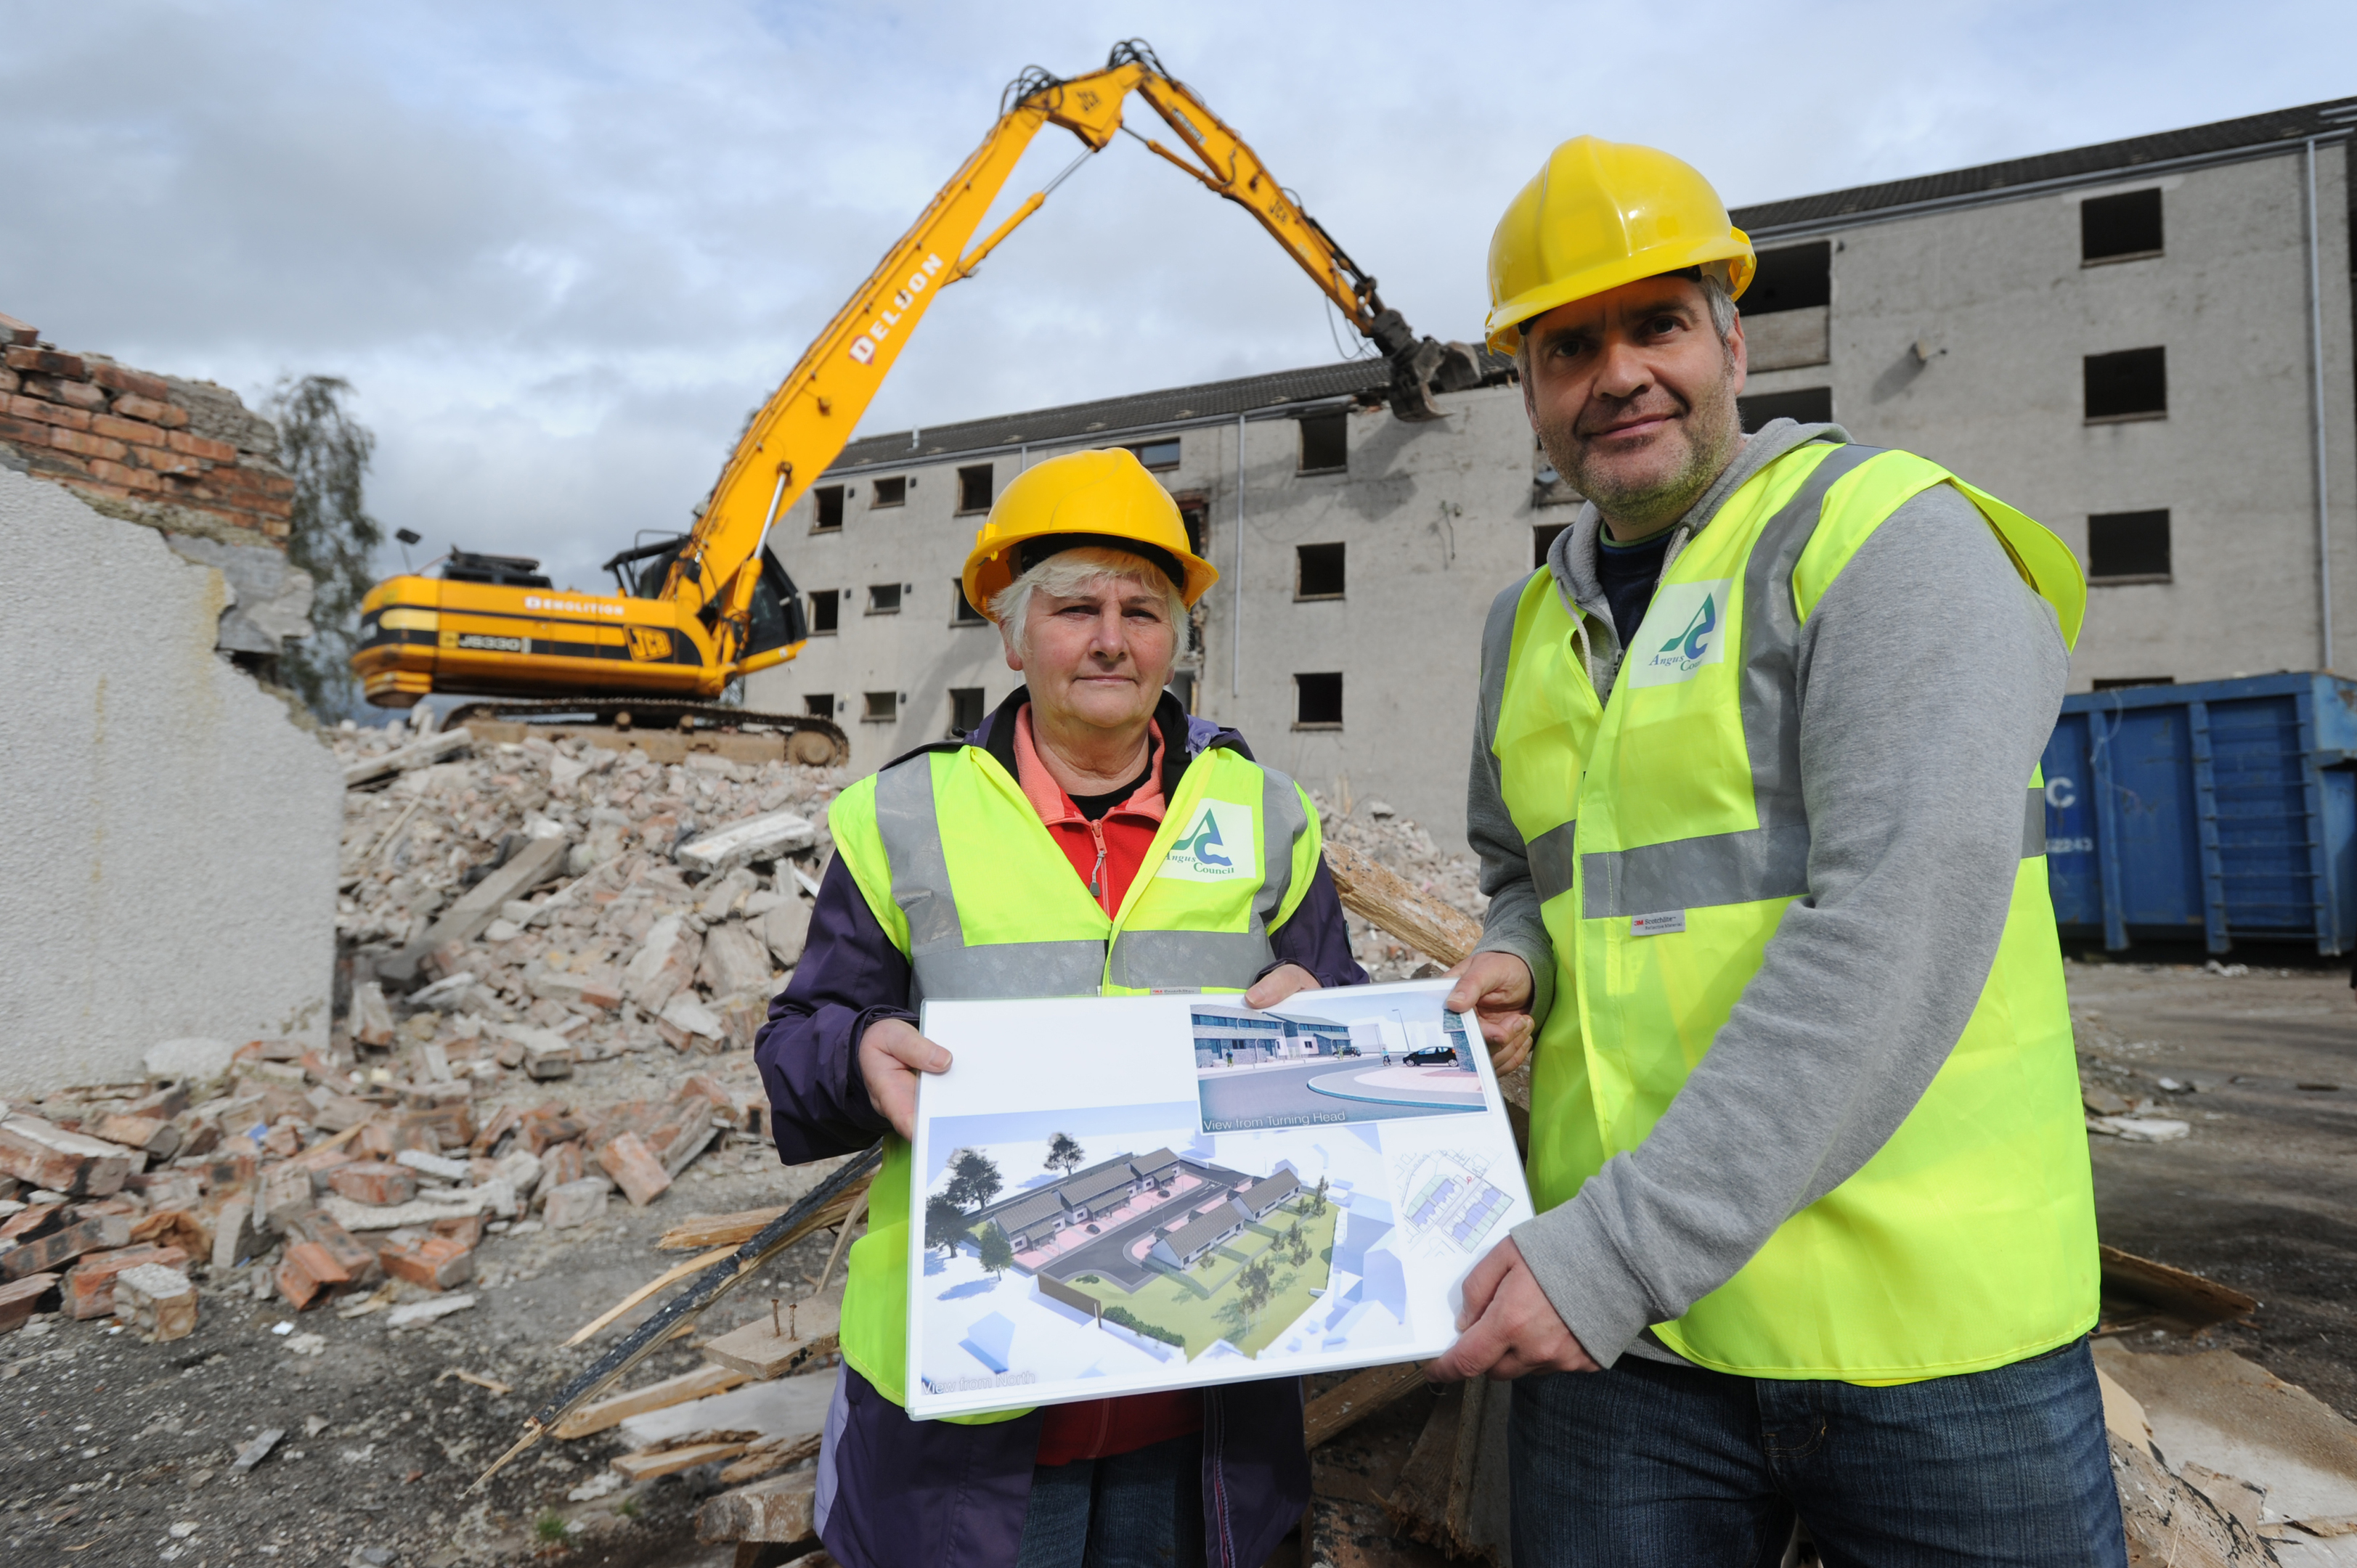 Councillors Donald Morrison and Jeanette Gaul at the site in Viewmount, Forfar.